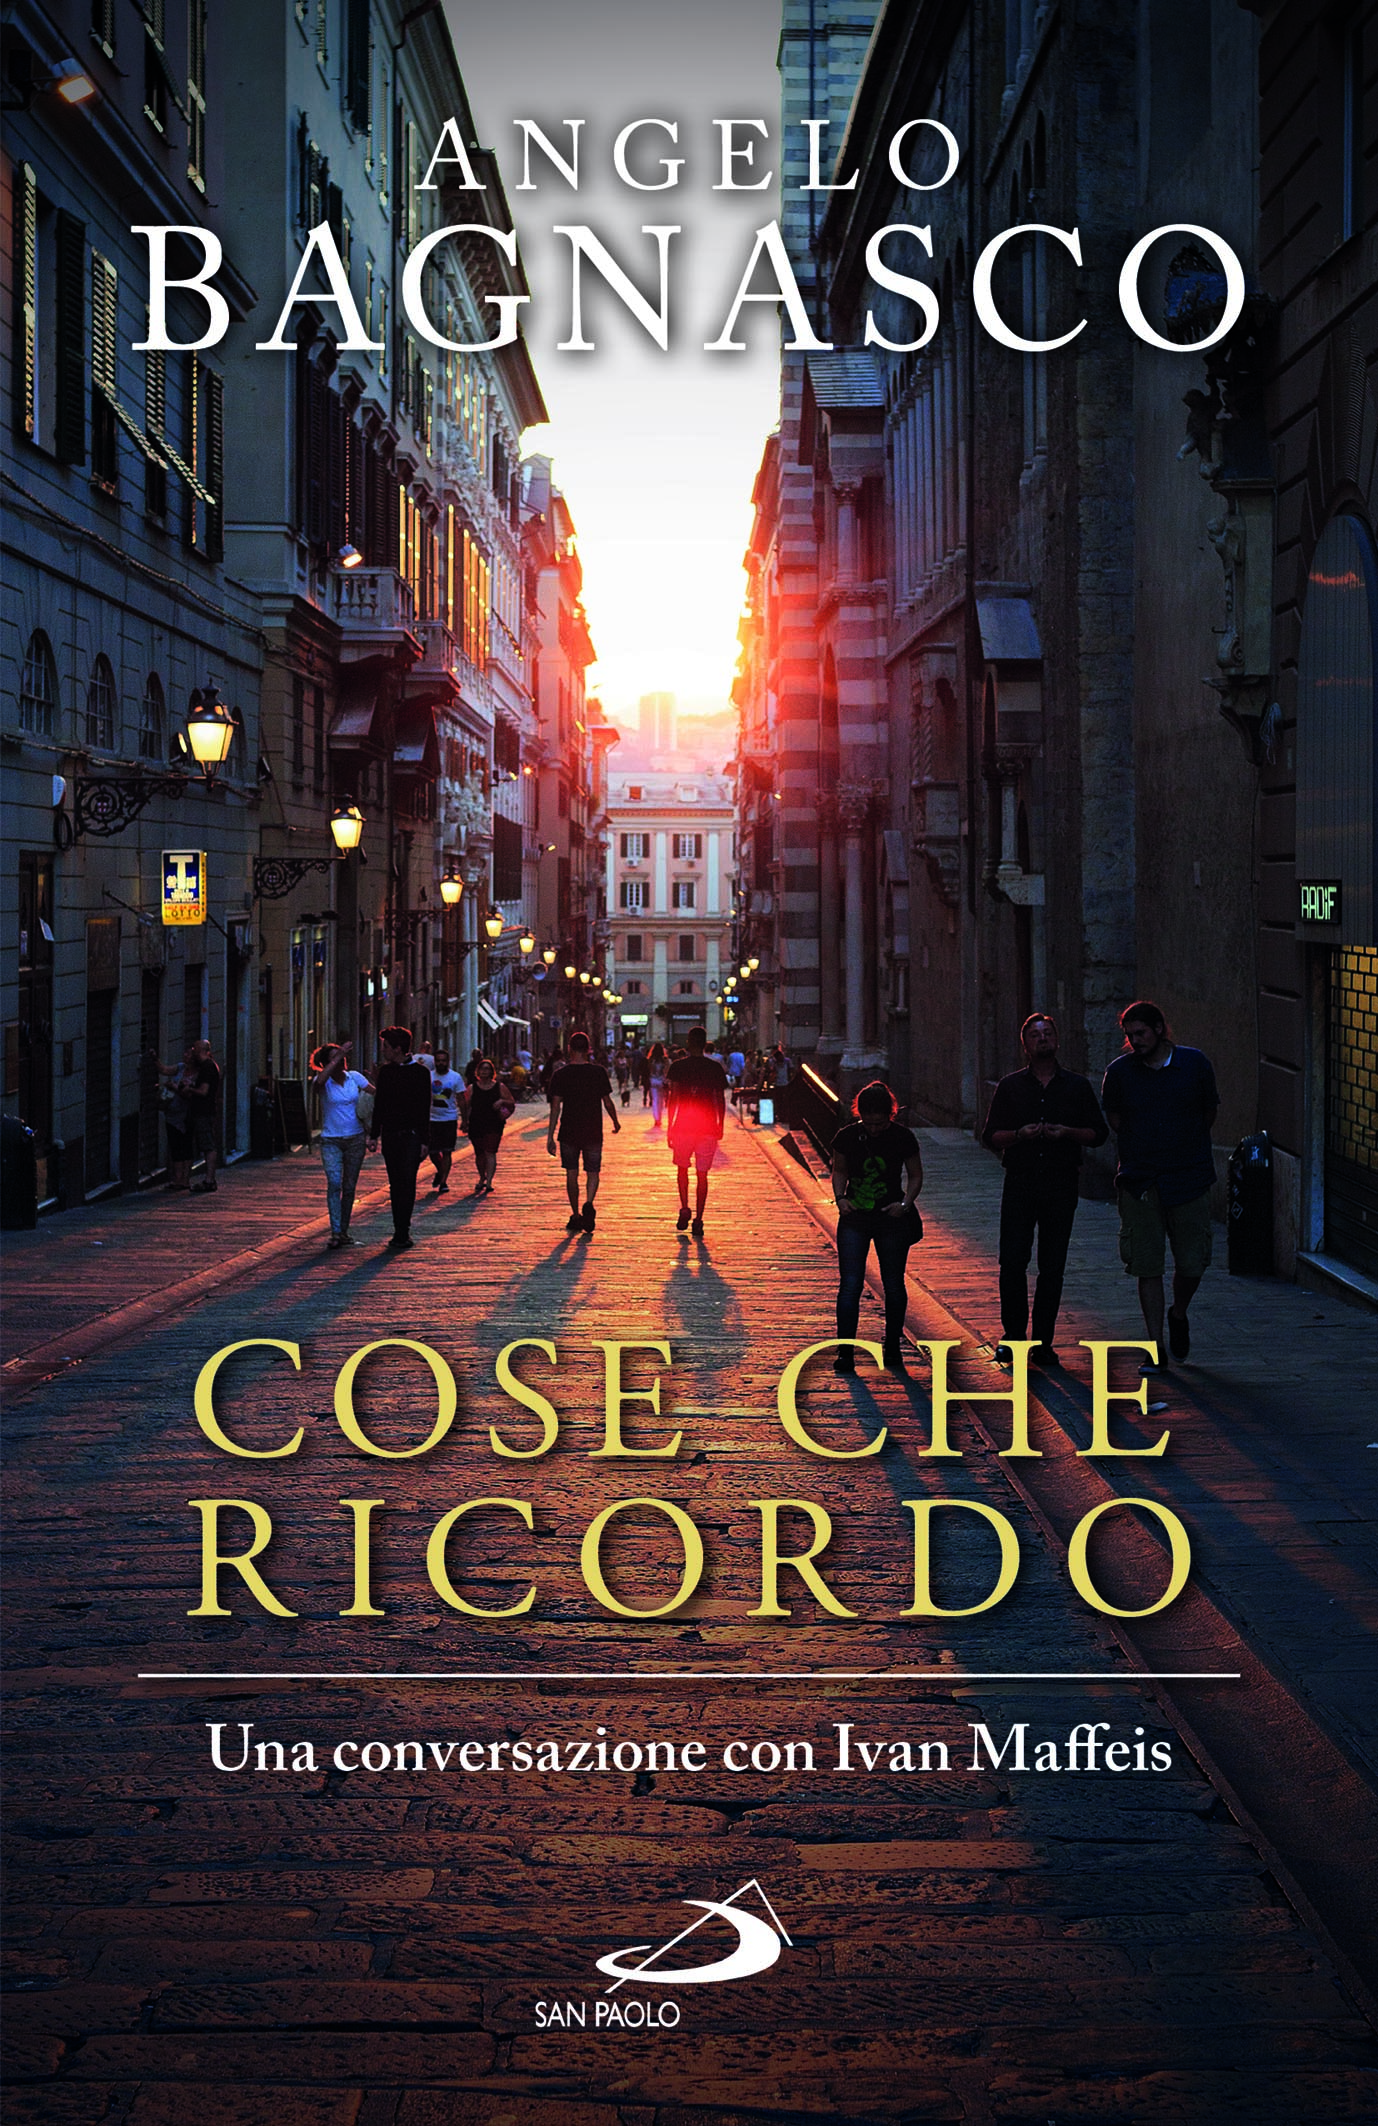 cosechericordo_cover